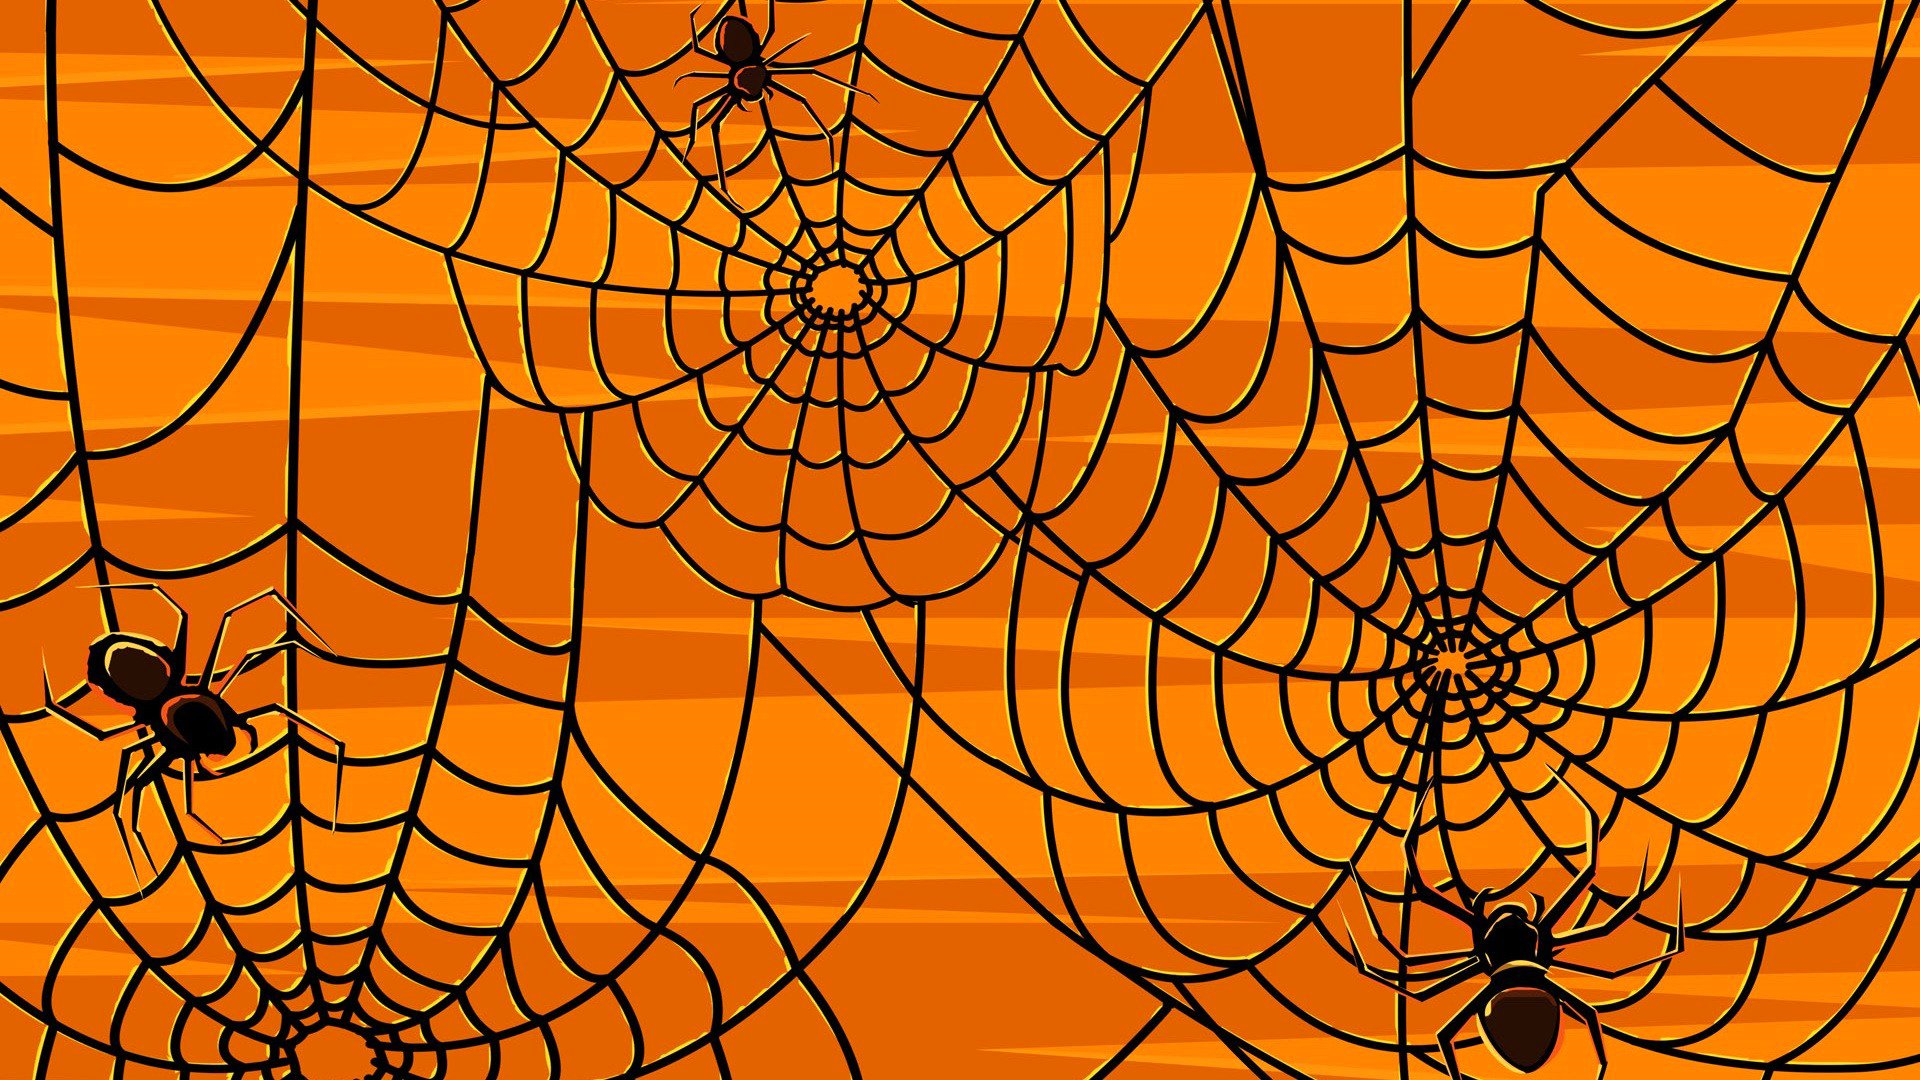 Spiders Web Images  Pixabay  Download Free Pictures